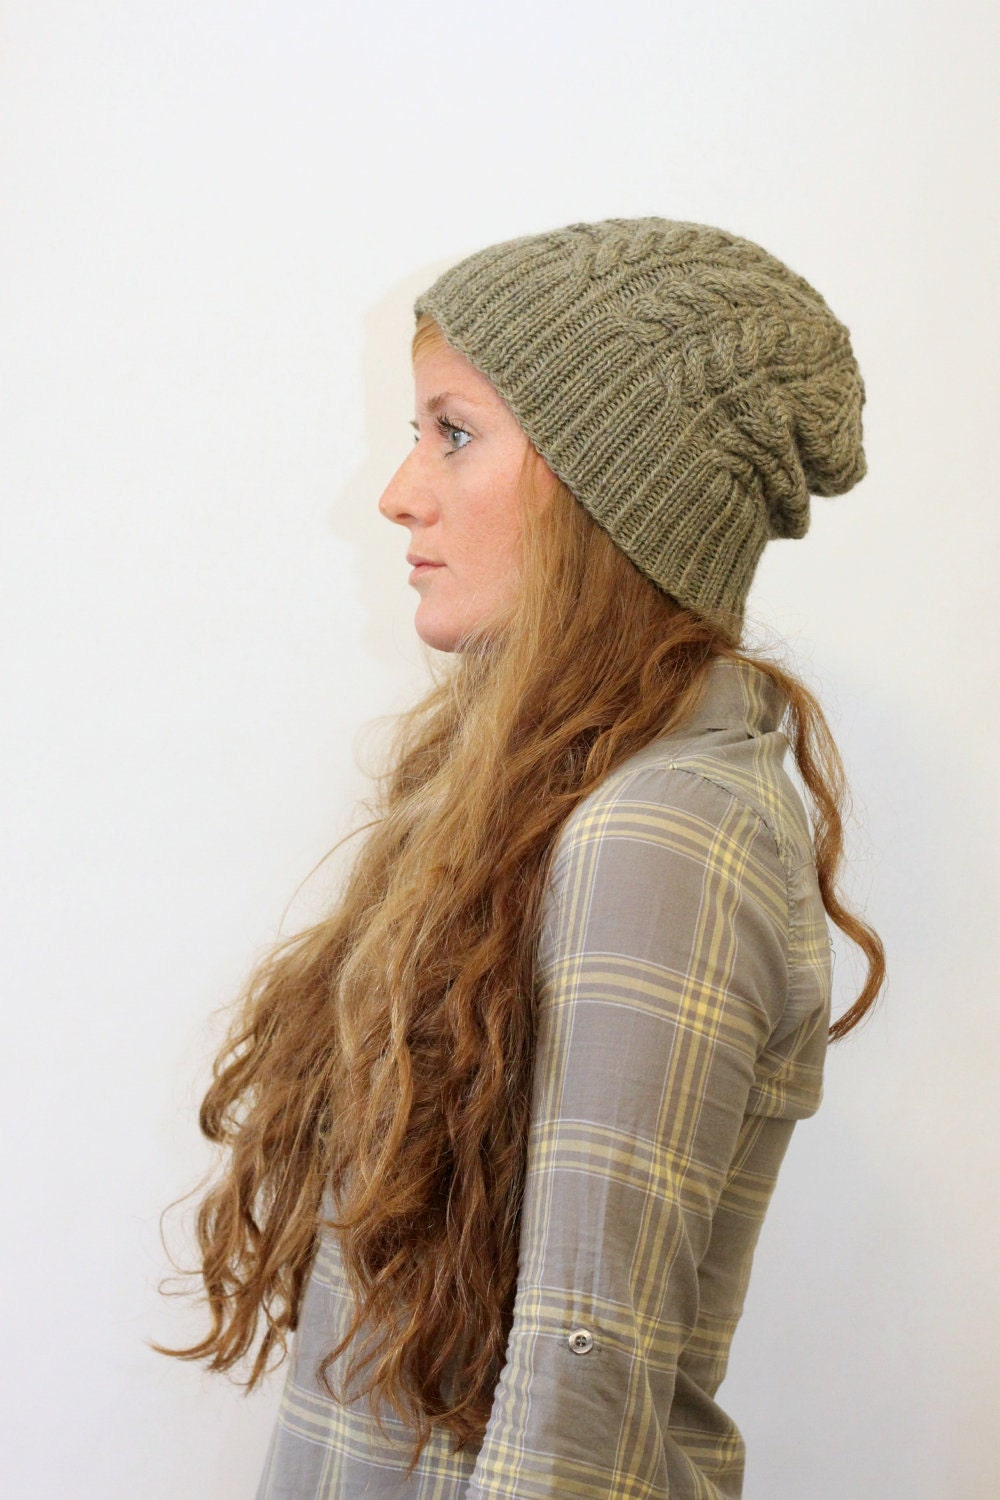 Knit Beanie Pattern Worsted Weight : KNITTING PATTERN // Kathleen hat // worsted cable rib toque